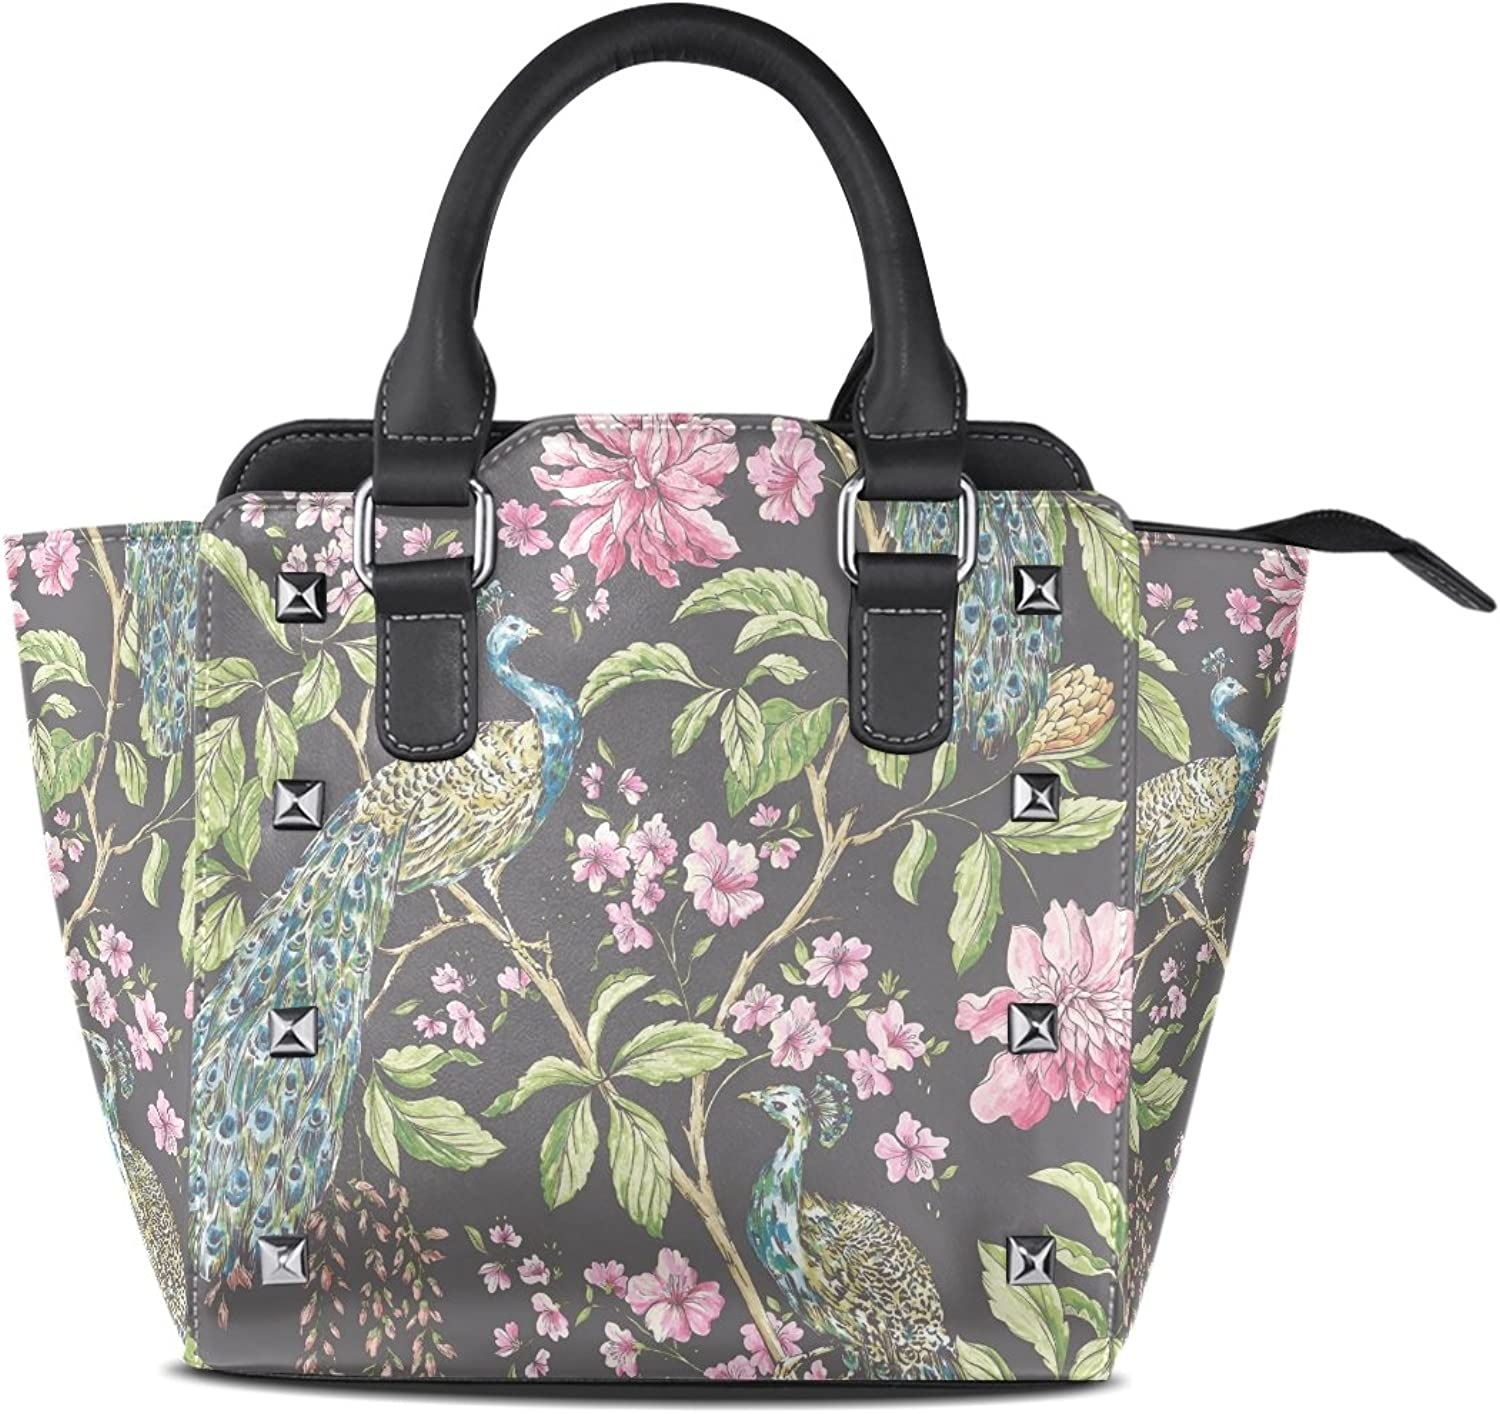 Sunlome Retro Peacock Flower Print Women's Leather Tote Shoulder Bags Handbags